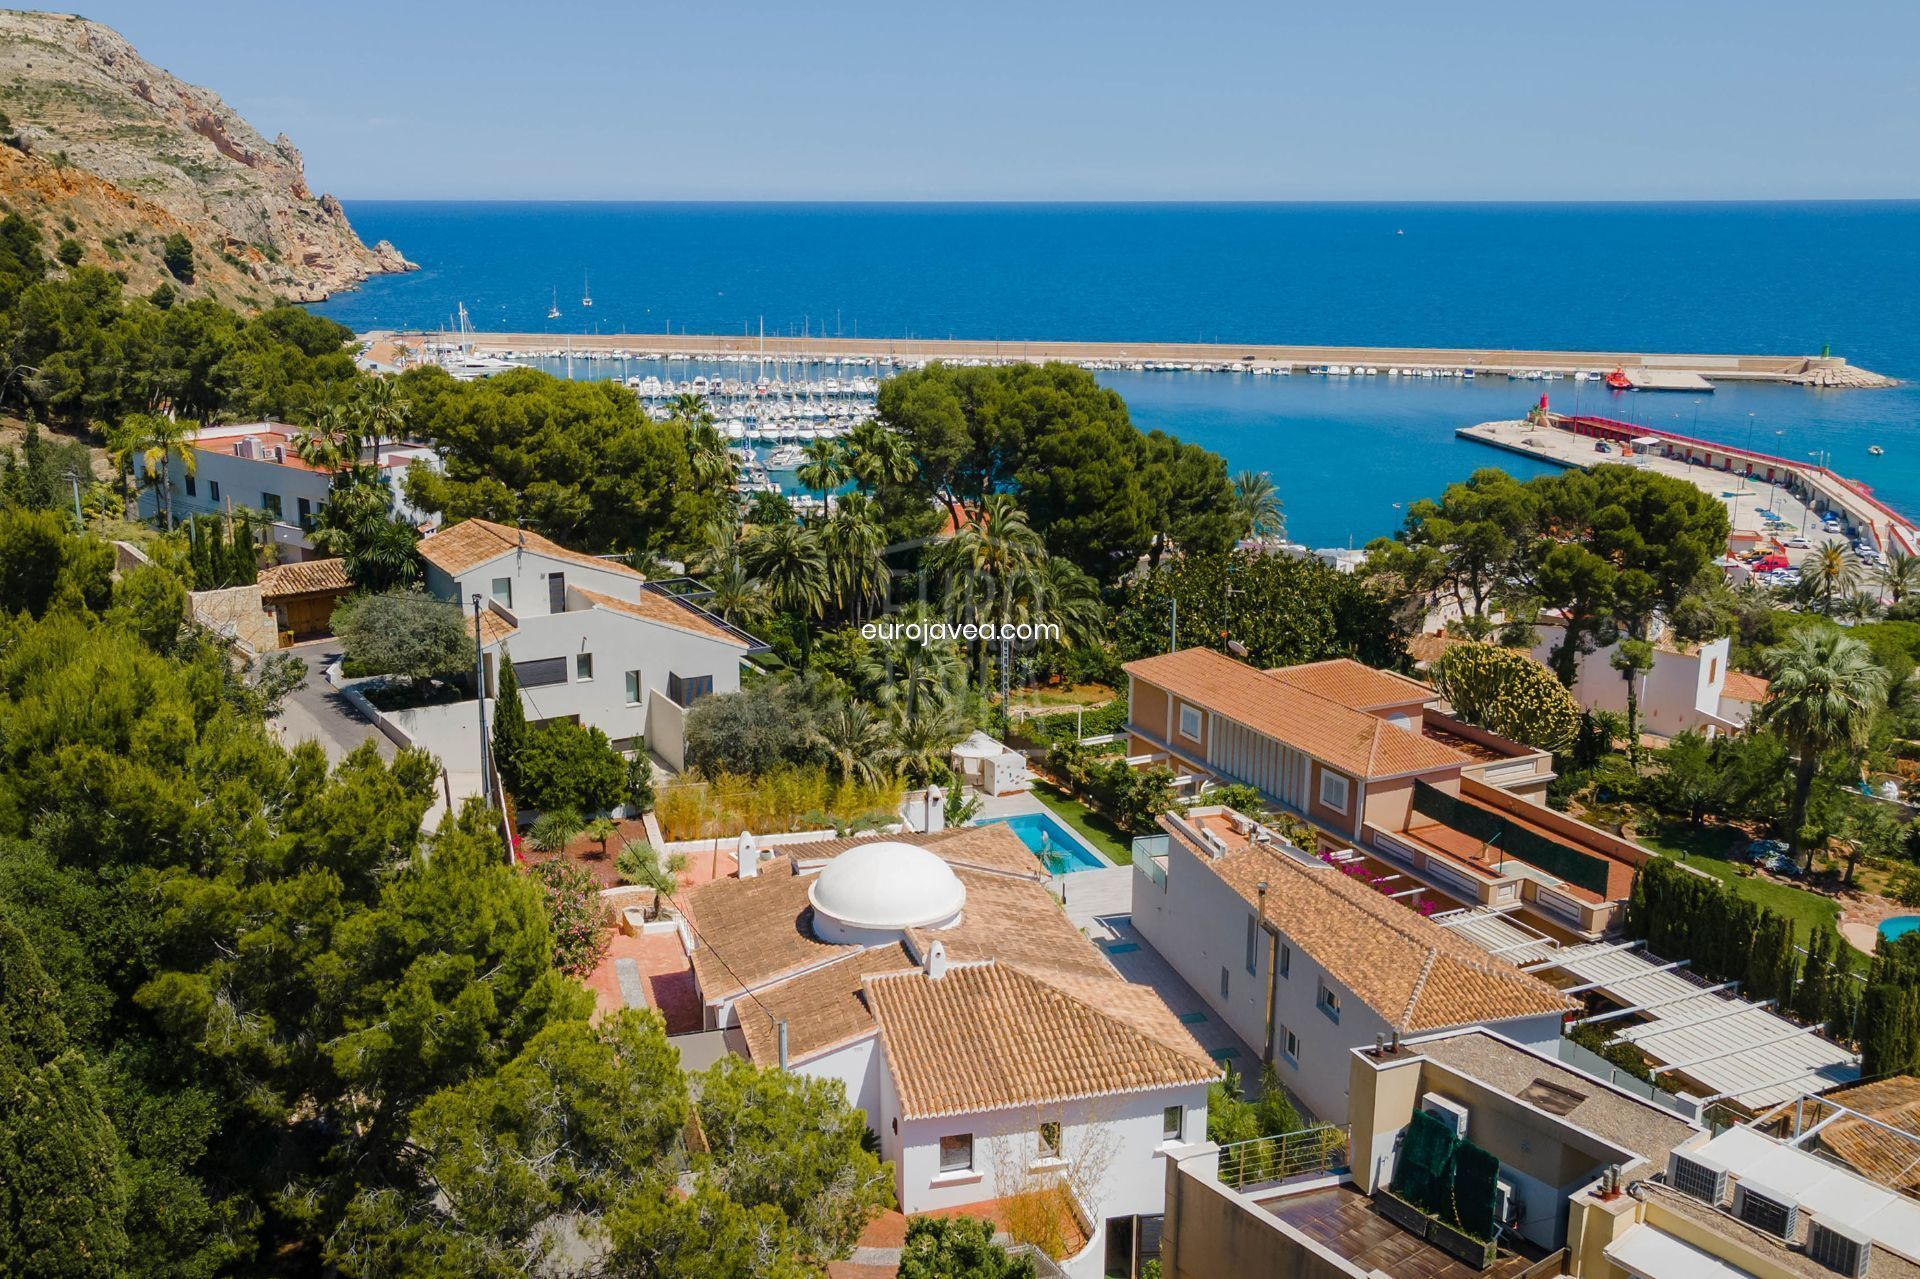 Exclusive villa for sale in Jávea with magnificent sea views walking distance to the port area